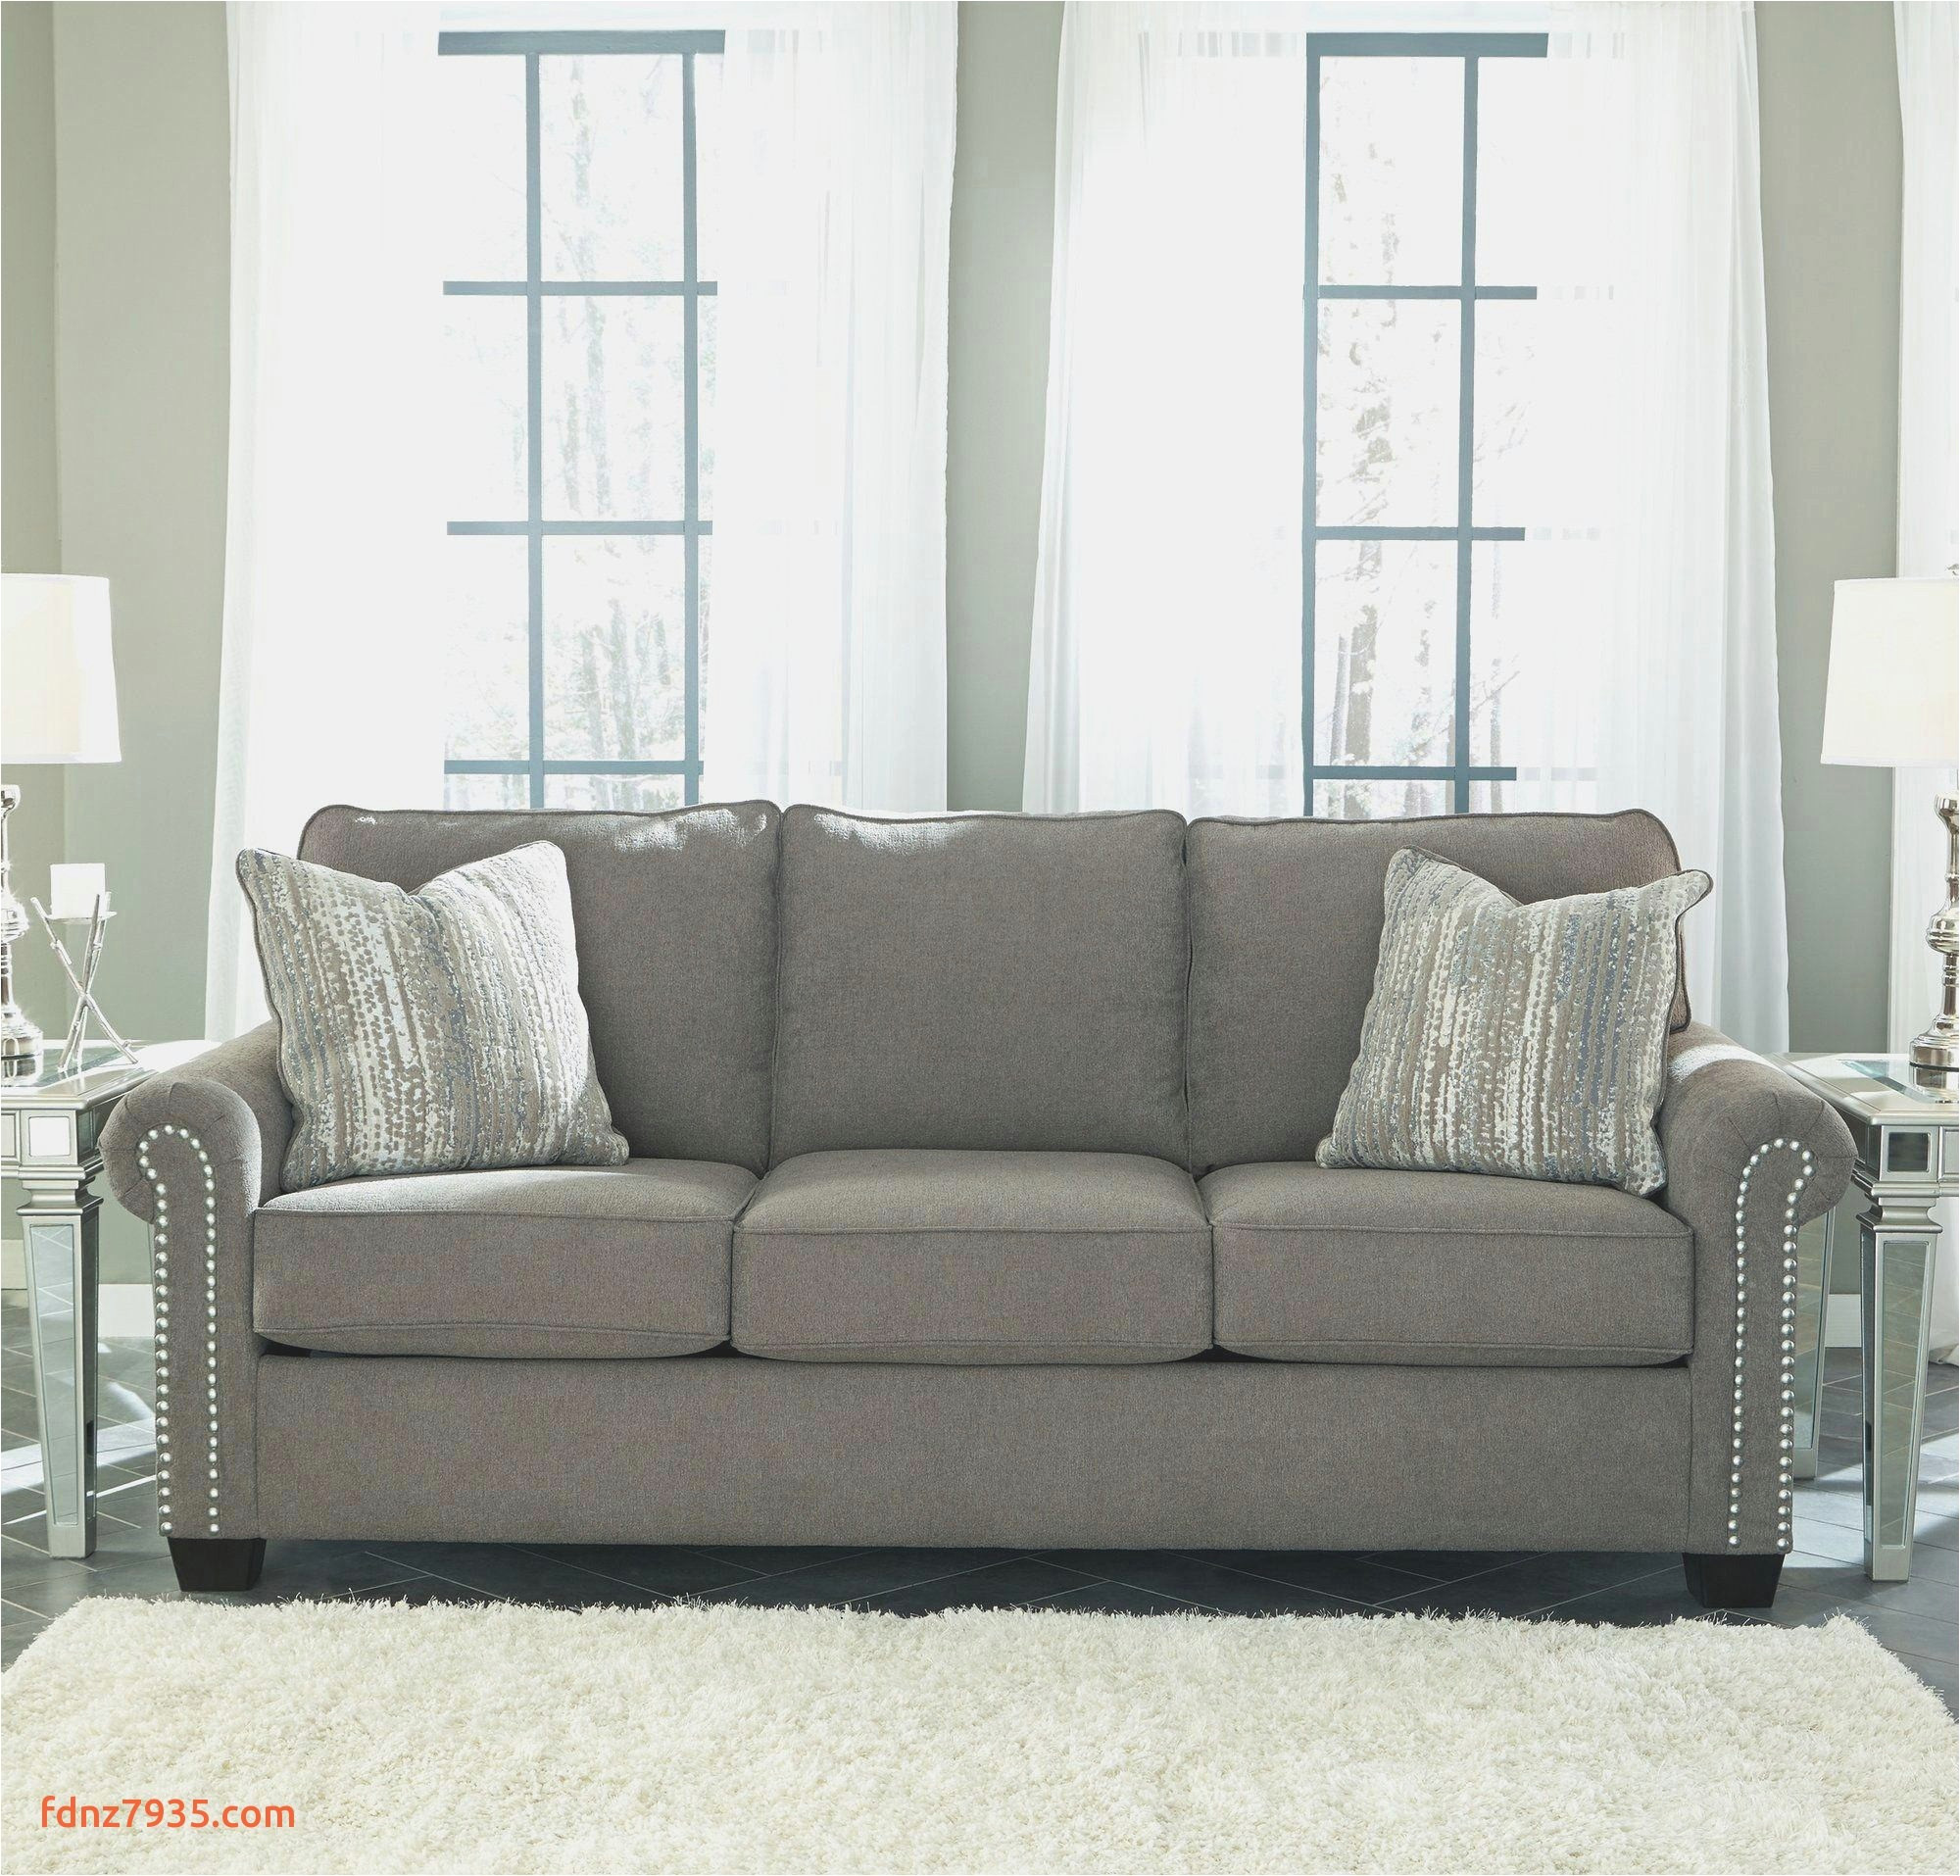 elegant living room furniture unique furniture pull out couch elegant davenport couch 0d tags amazing